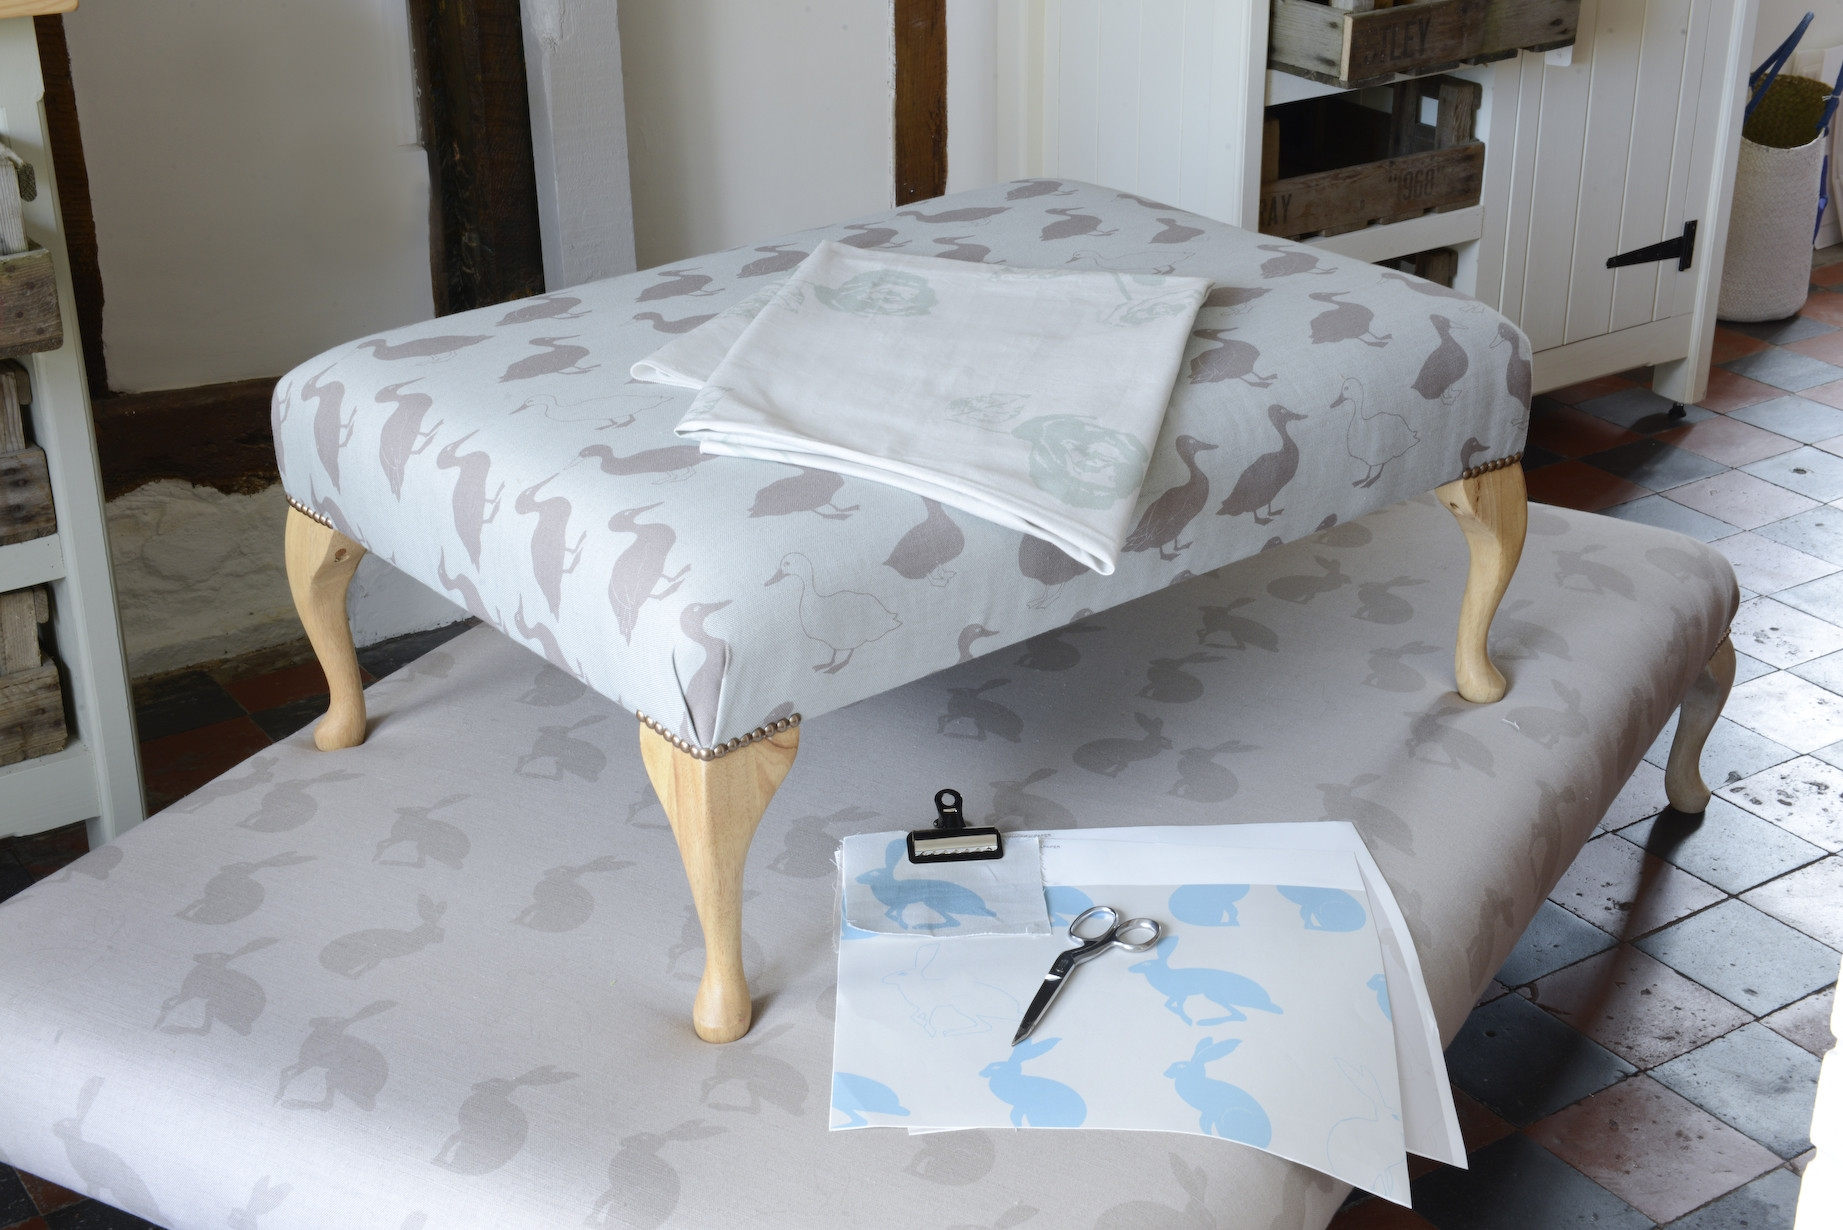 Amazing Large Upholstered Footstool Fascinating Small 10 Image Of Regarding Upholstered Footstools (Image 1 of 15)